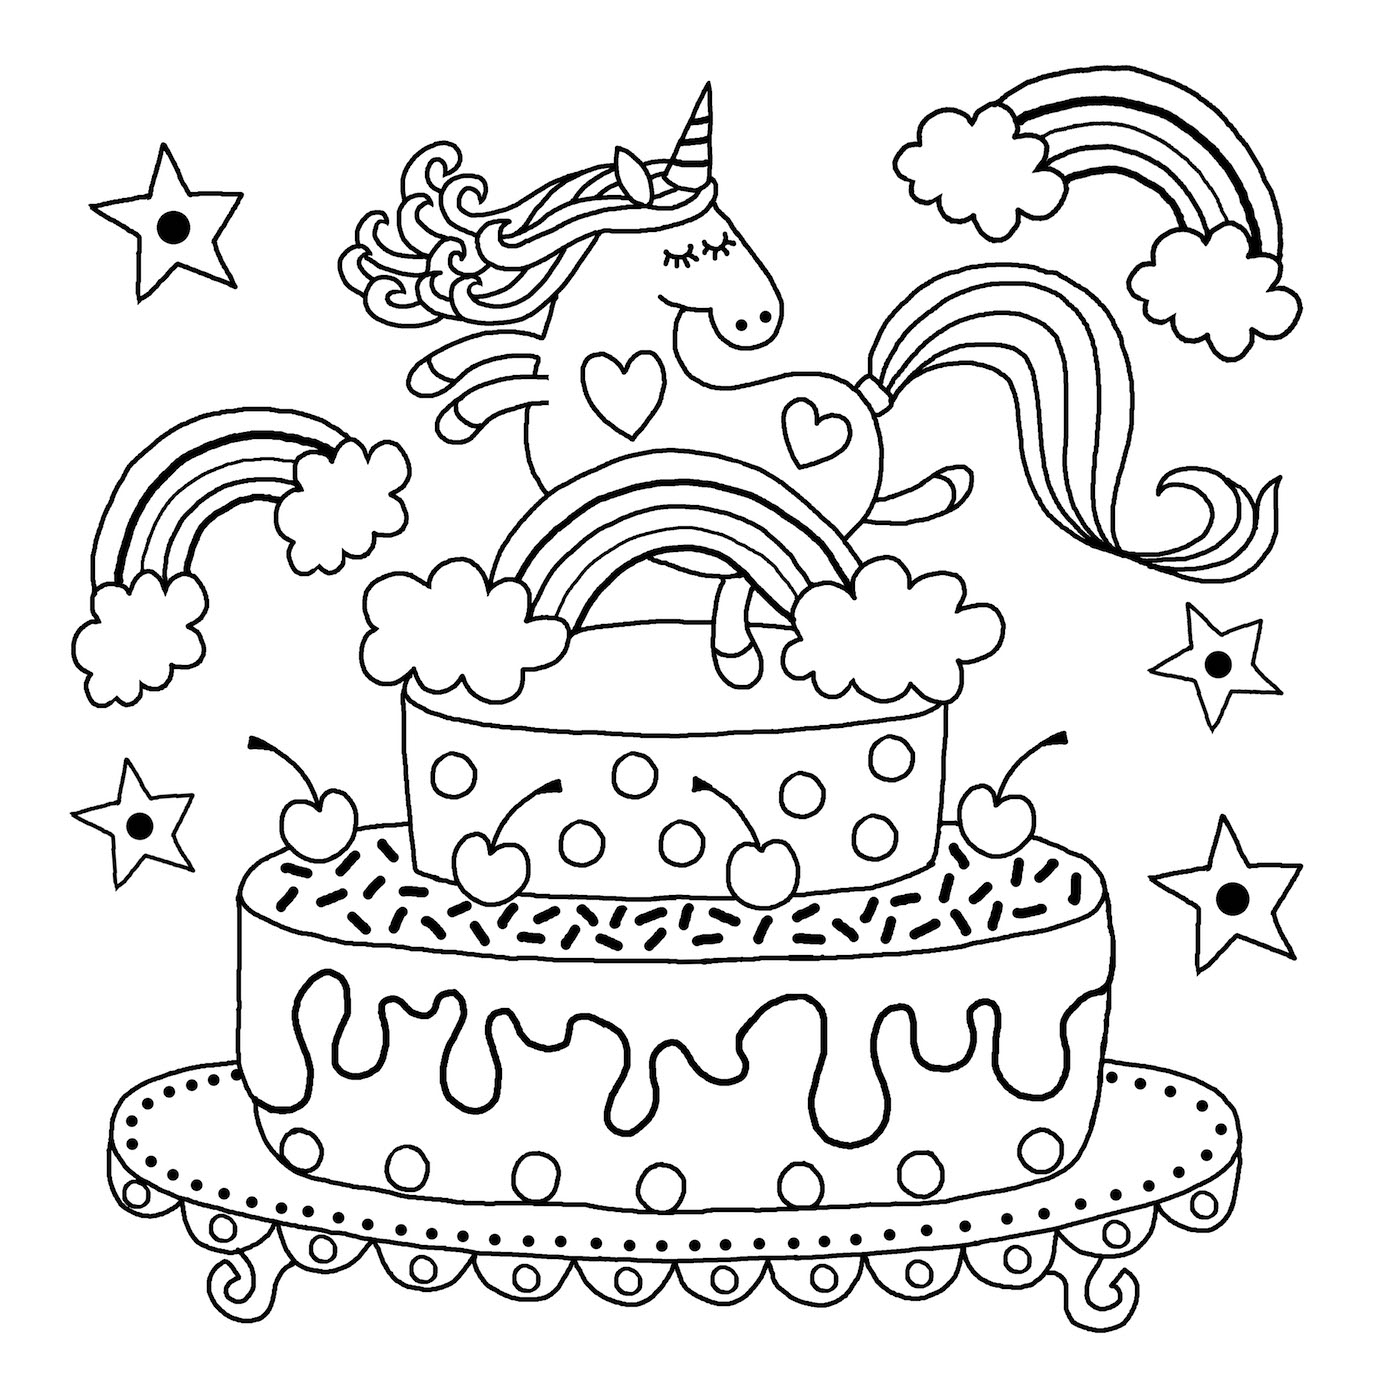 unicorn pictures for coloring unicorn coloring pages free learning printable unicorn pictures coloring for